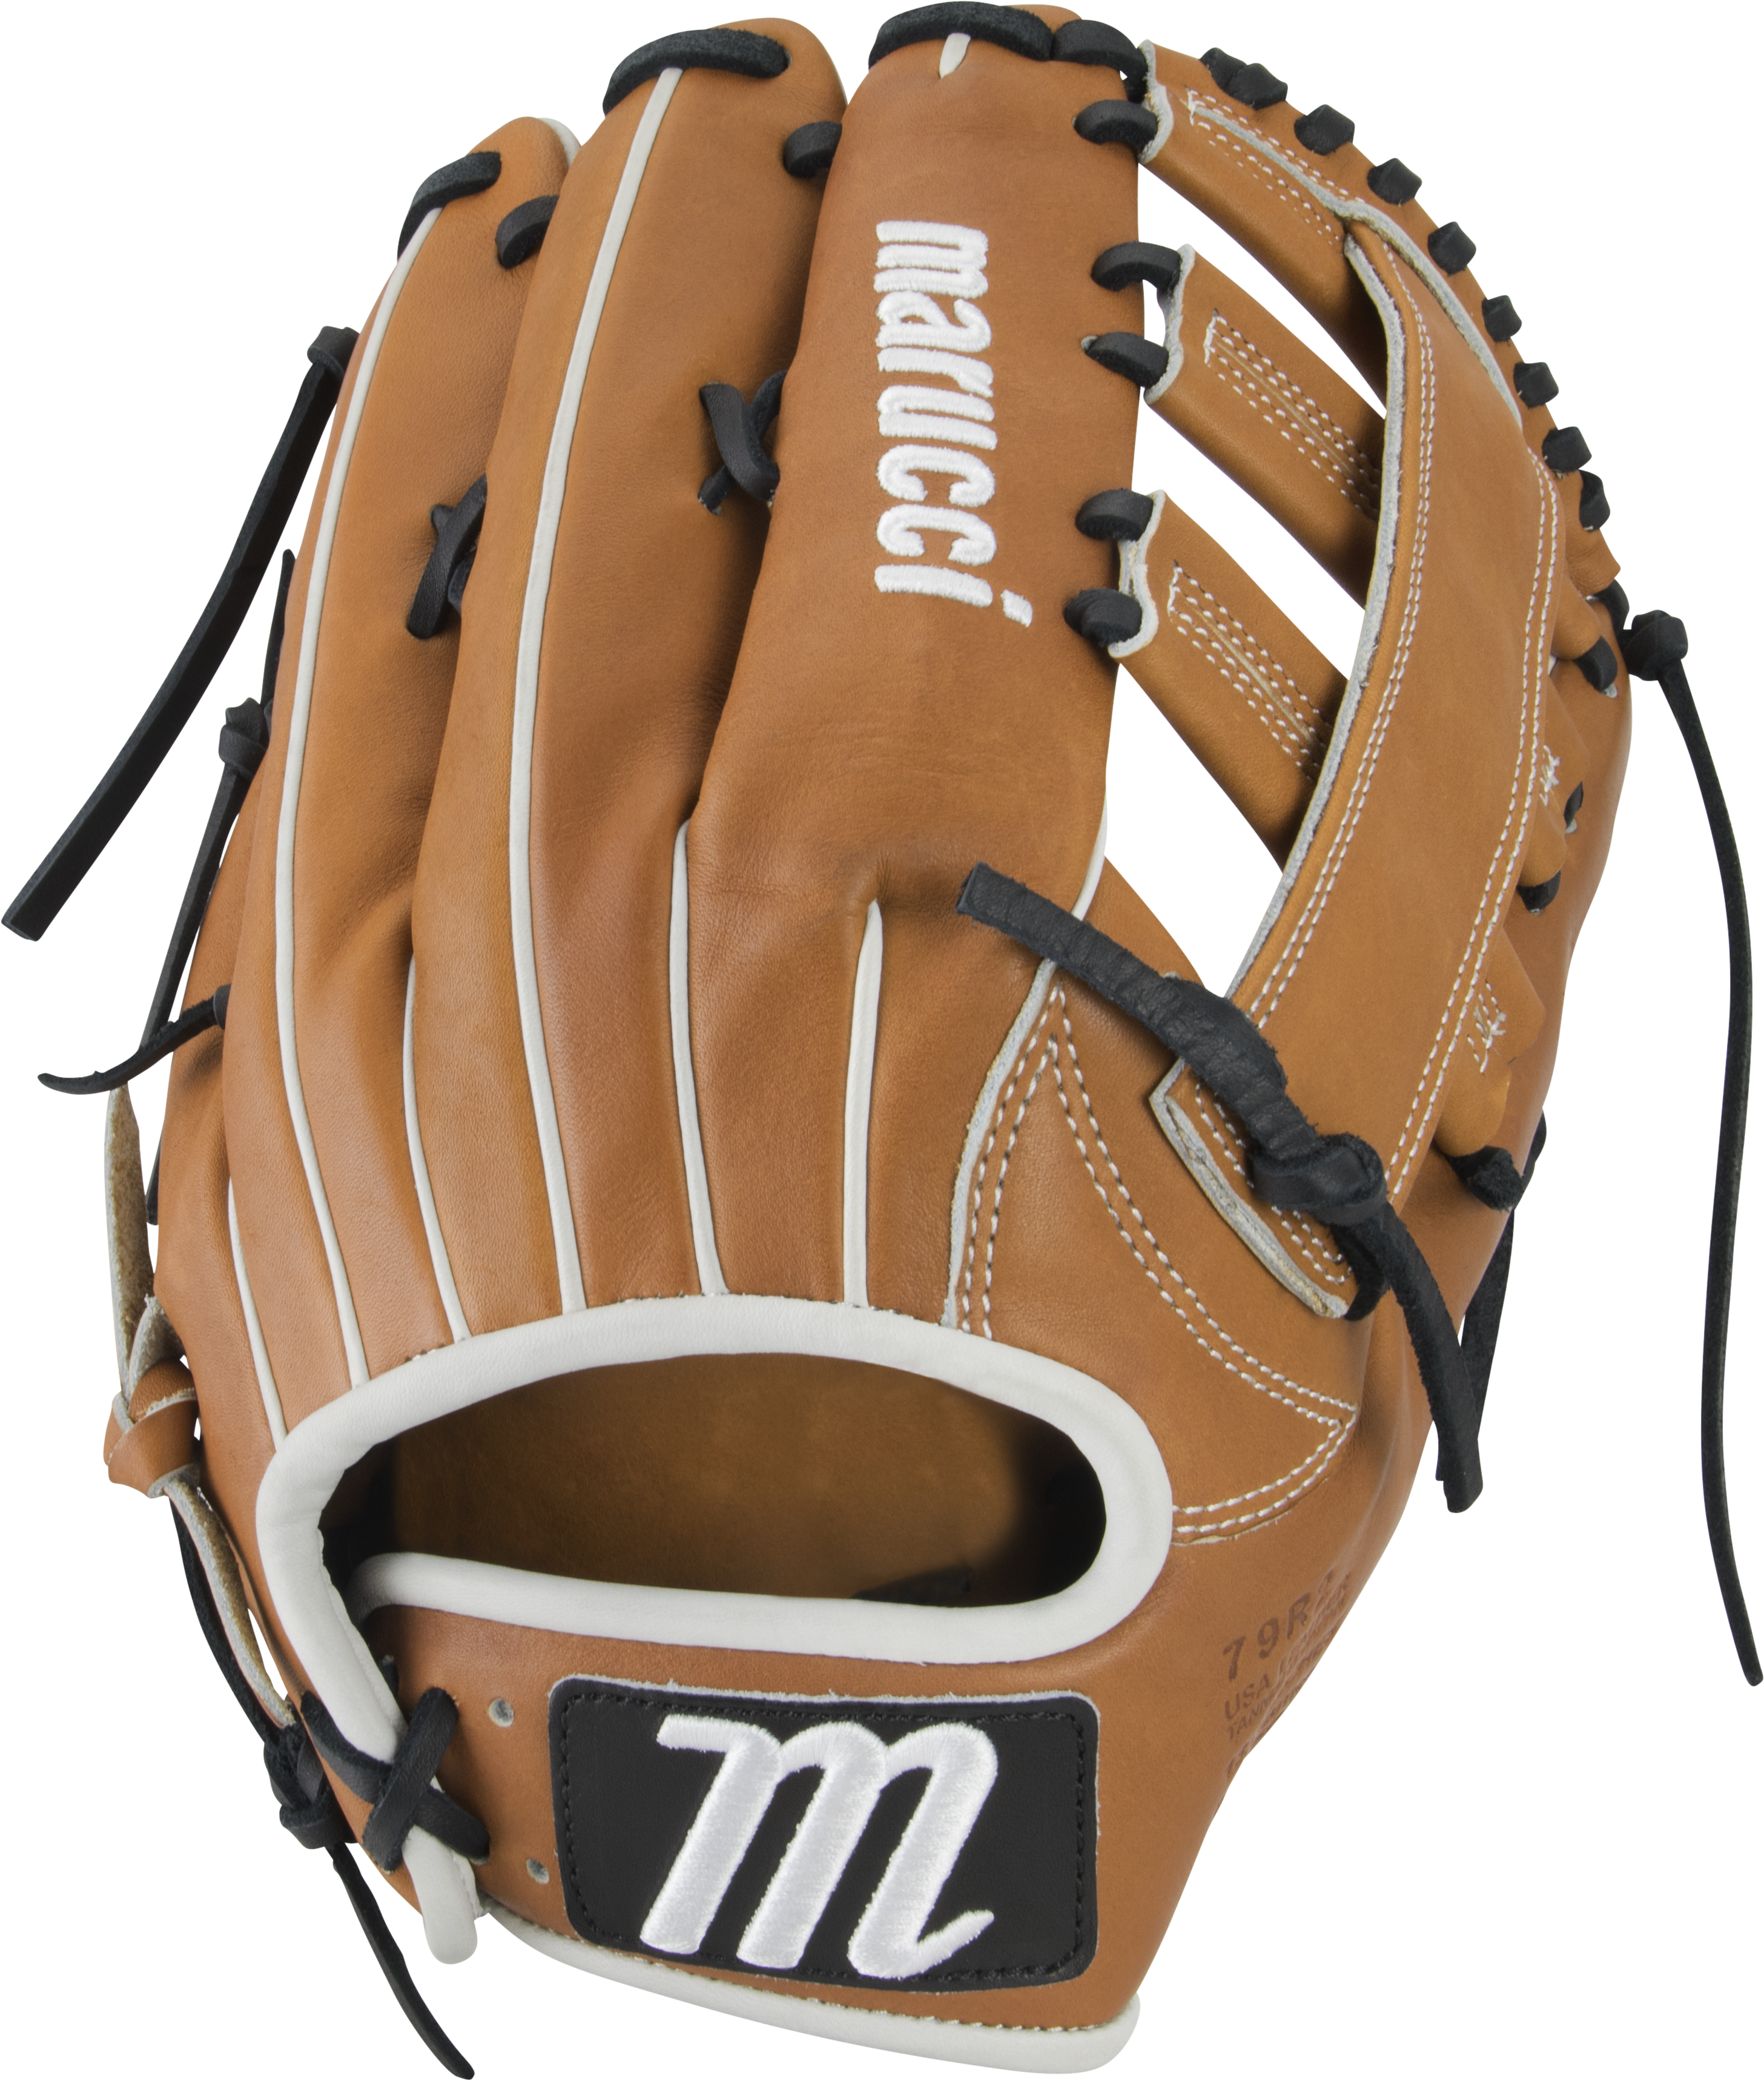 marucci-capitol-12-75-baseball-glove-79r2-two-bar-post-web-right-hand-throw MFGCP79R2-TFBK-RightHandThrow Marucci  849817099308 Premium Japanese-tanned USA Kip leather combines ideal stiffness with lightweight feel